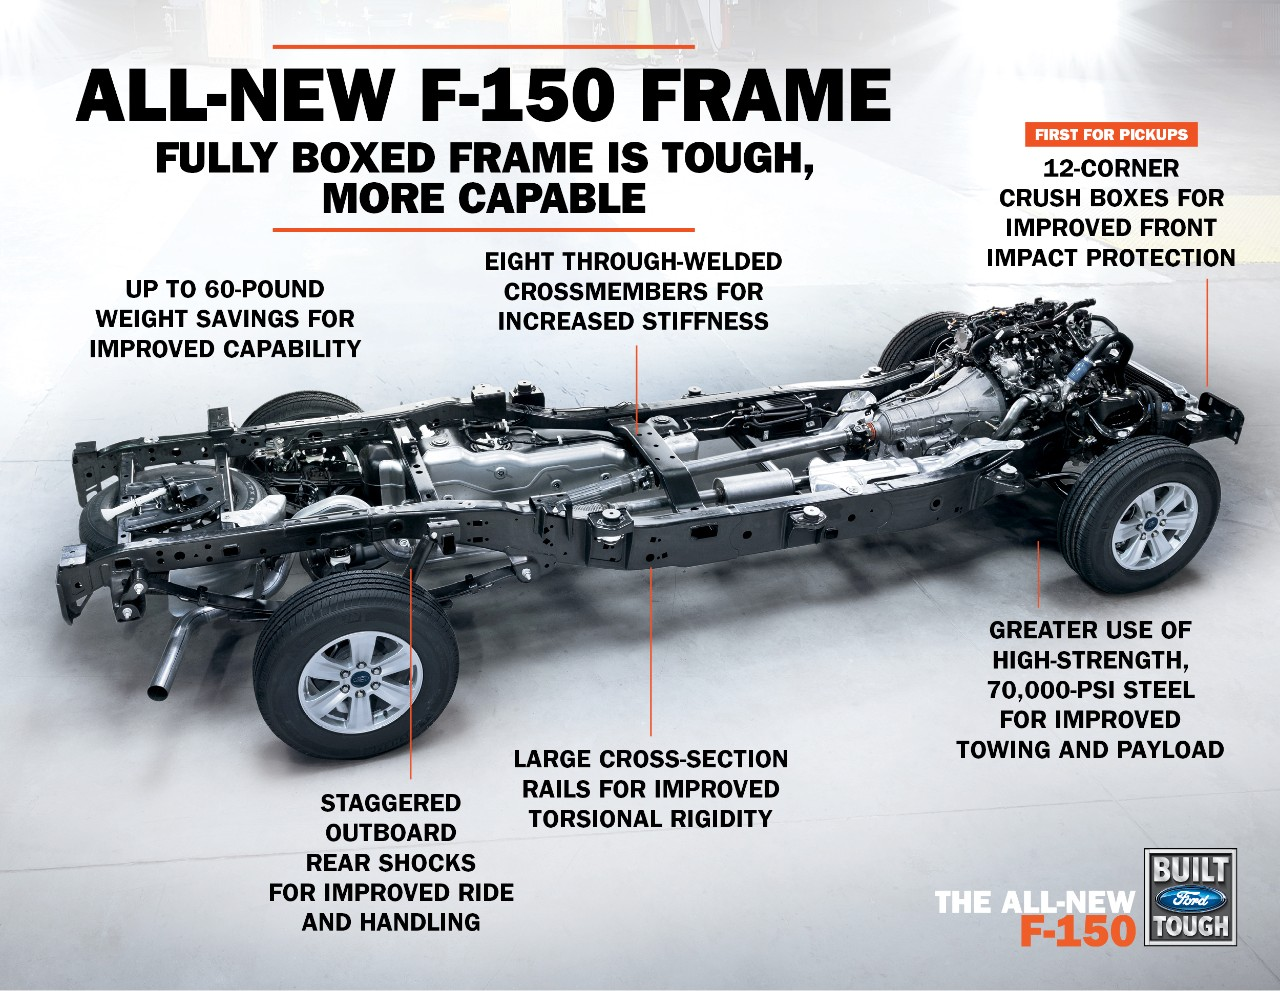 2015 Ford F 150 Frame Creates Better Performance The News Wheel 2014 Silverado Trailer Brake Wiring Harness